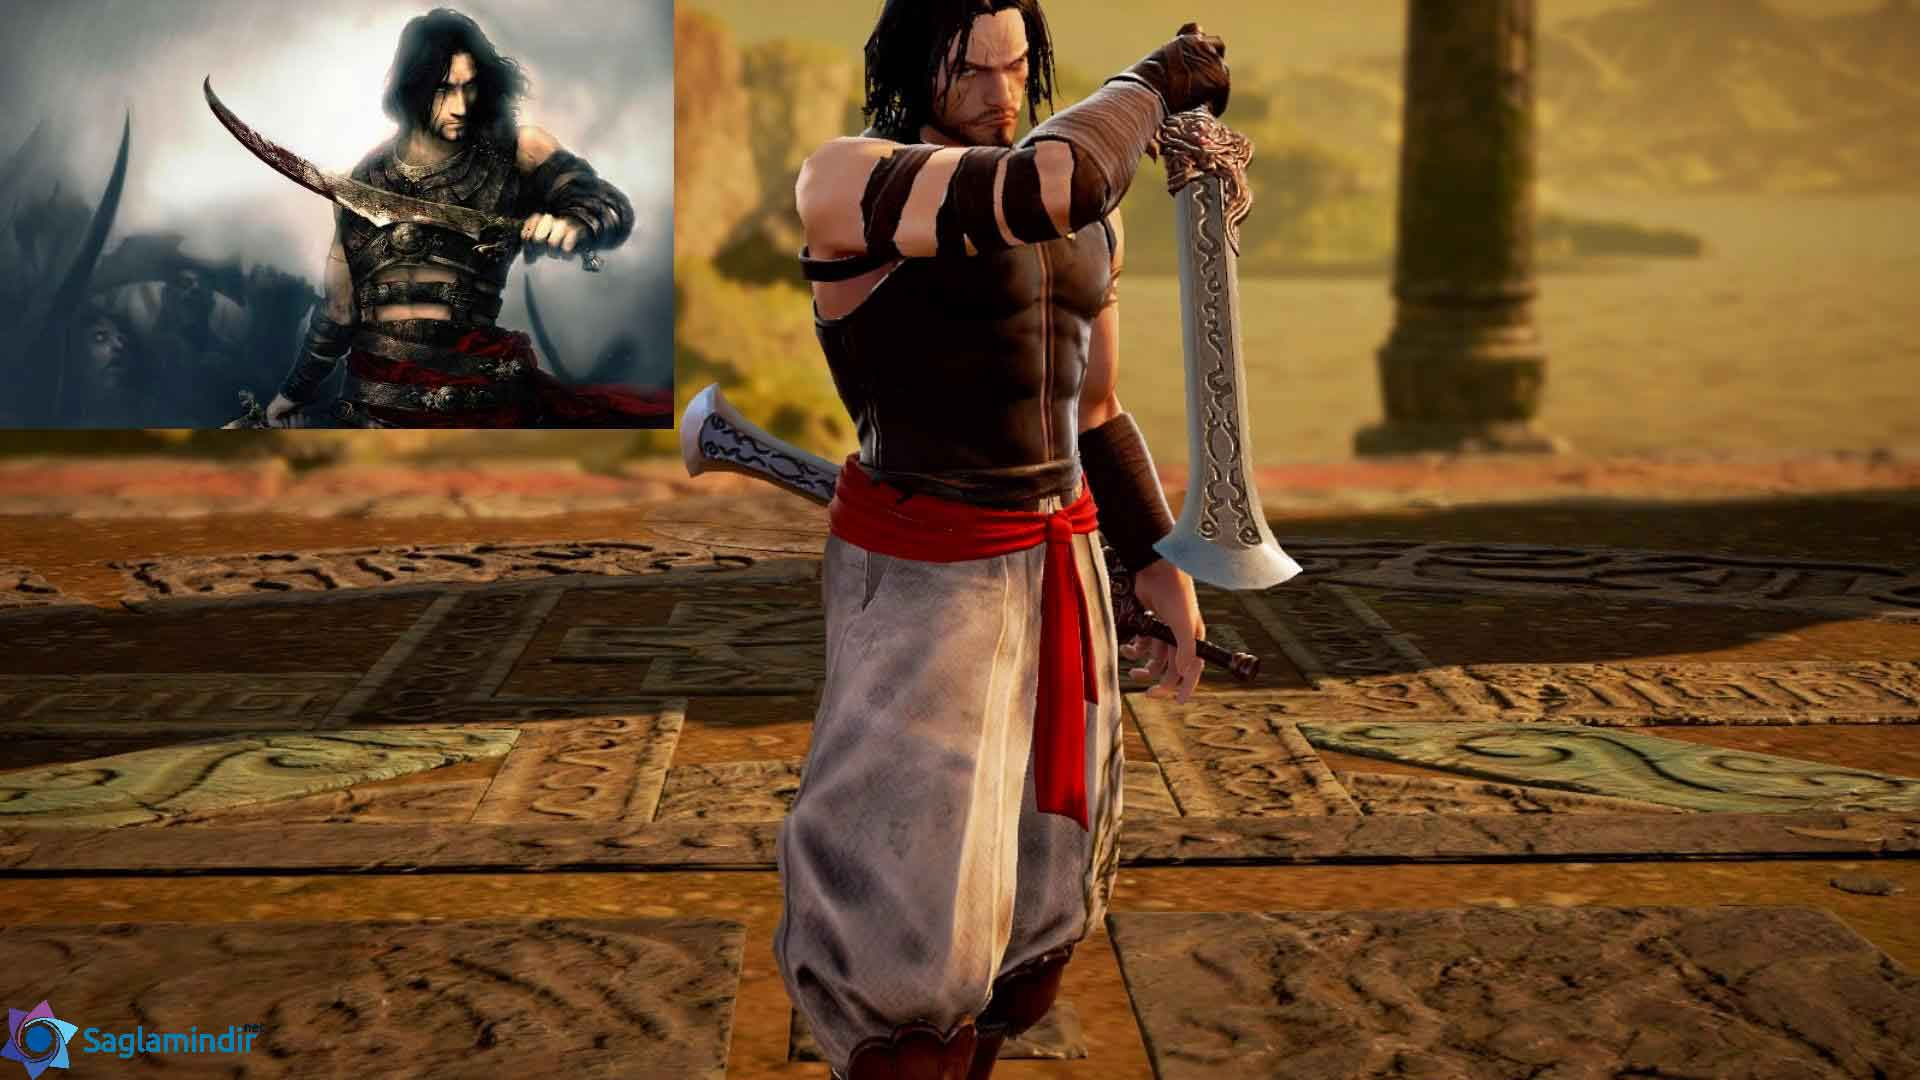 Prince-Of-Persia-Warrior-Within-saglamindir